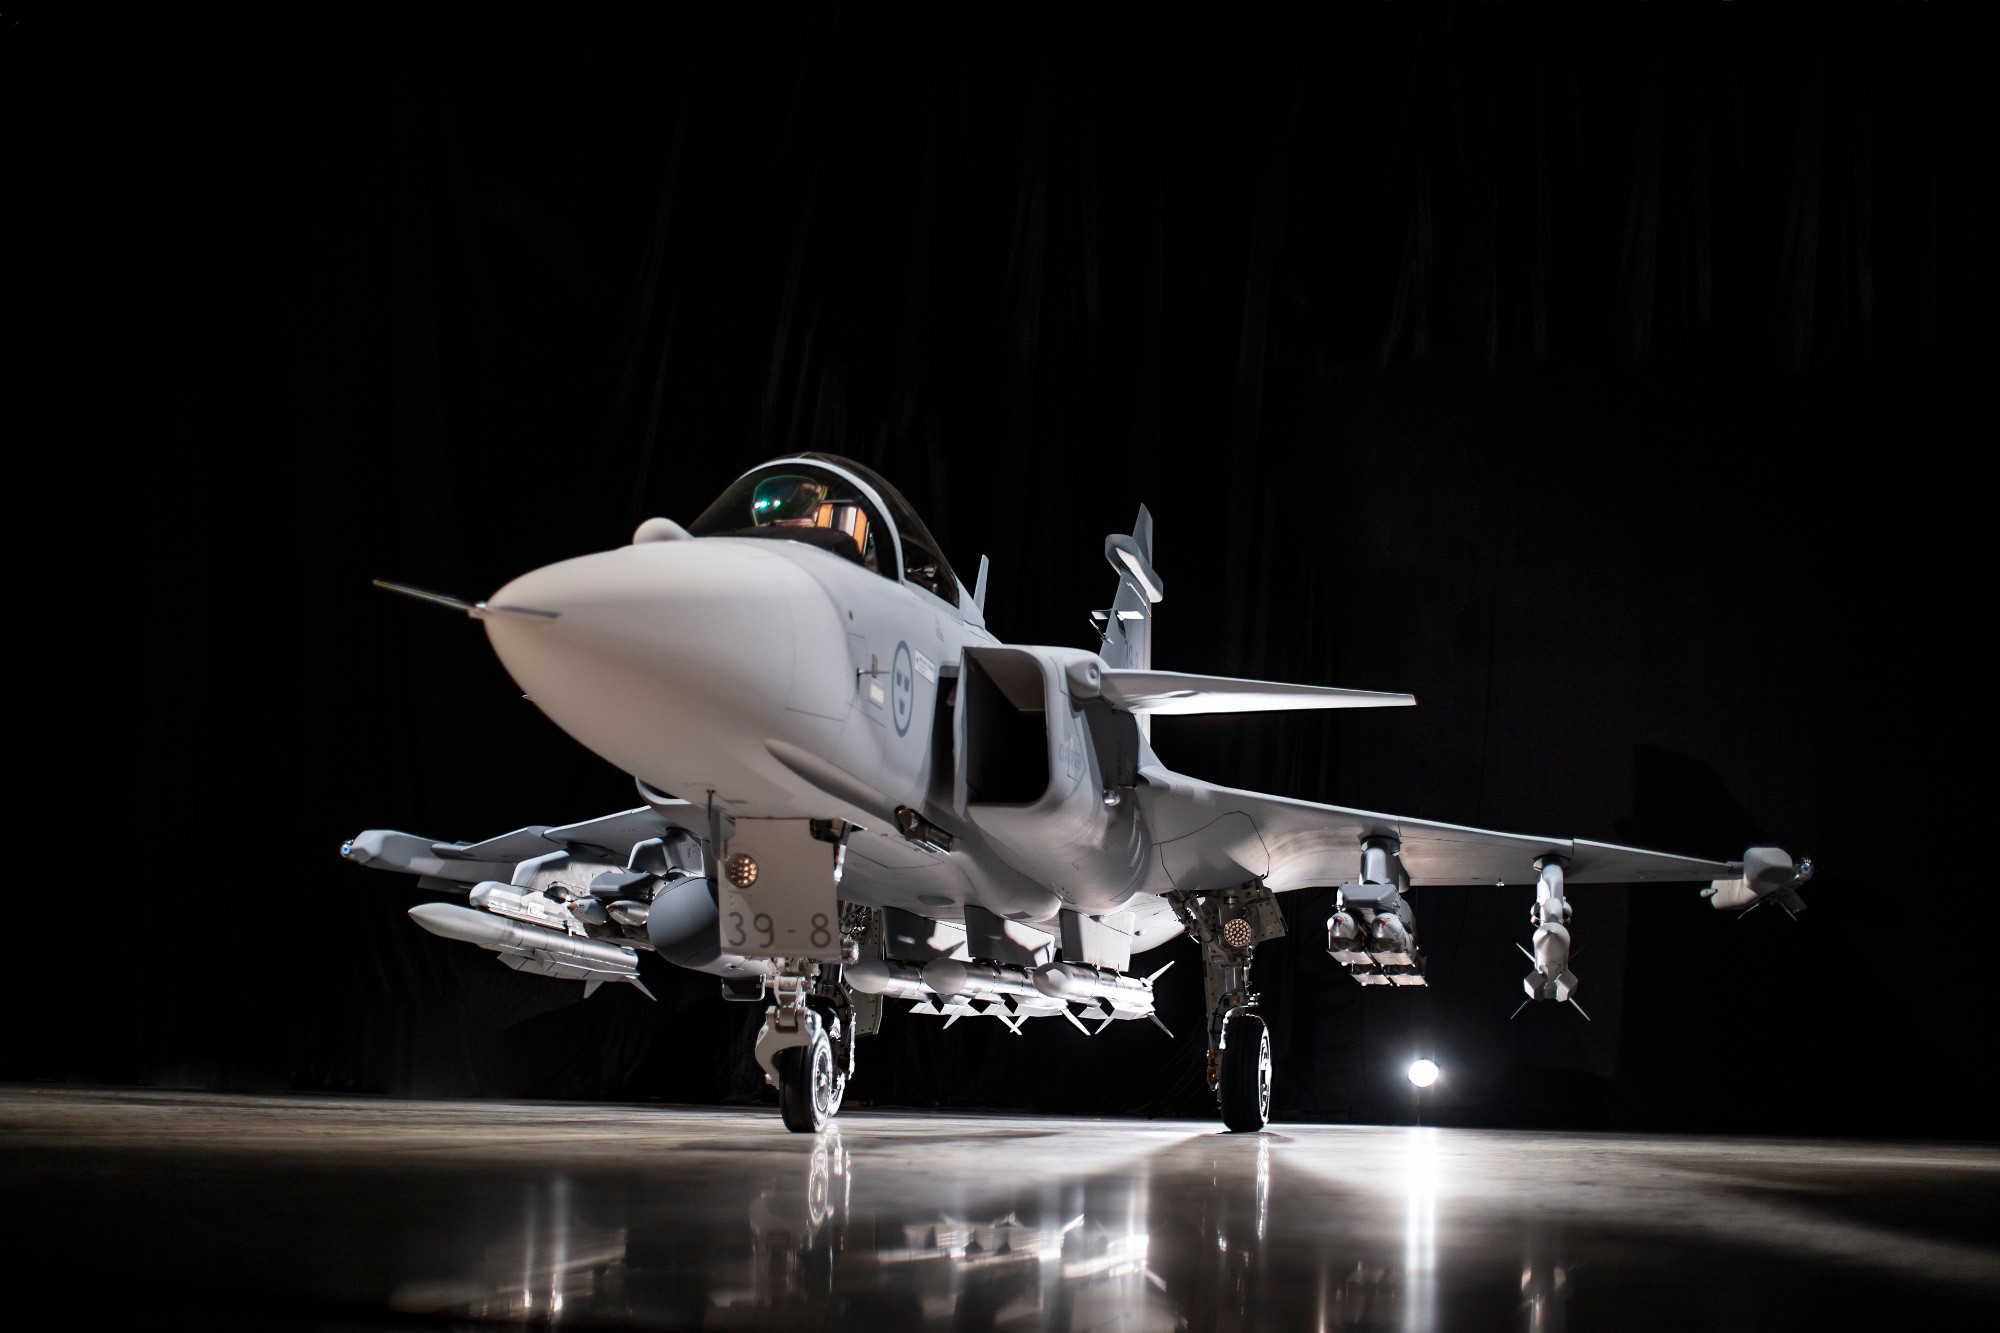 On May 18, 2016 the Swedish Saab AB debuted the Gripen E, its updated fighter jet during a press conference at its factory in Linköping, where it assembles the planes. The international defence company stated it already has contracts with the Swedish and Brazilian air forces for nearly 100 aircraft. The Canadian firm Héroux-Devtek recently won a contract for the production of complete landing gear systems for the Gripen E. (saab ab)